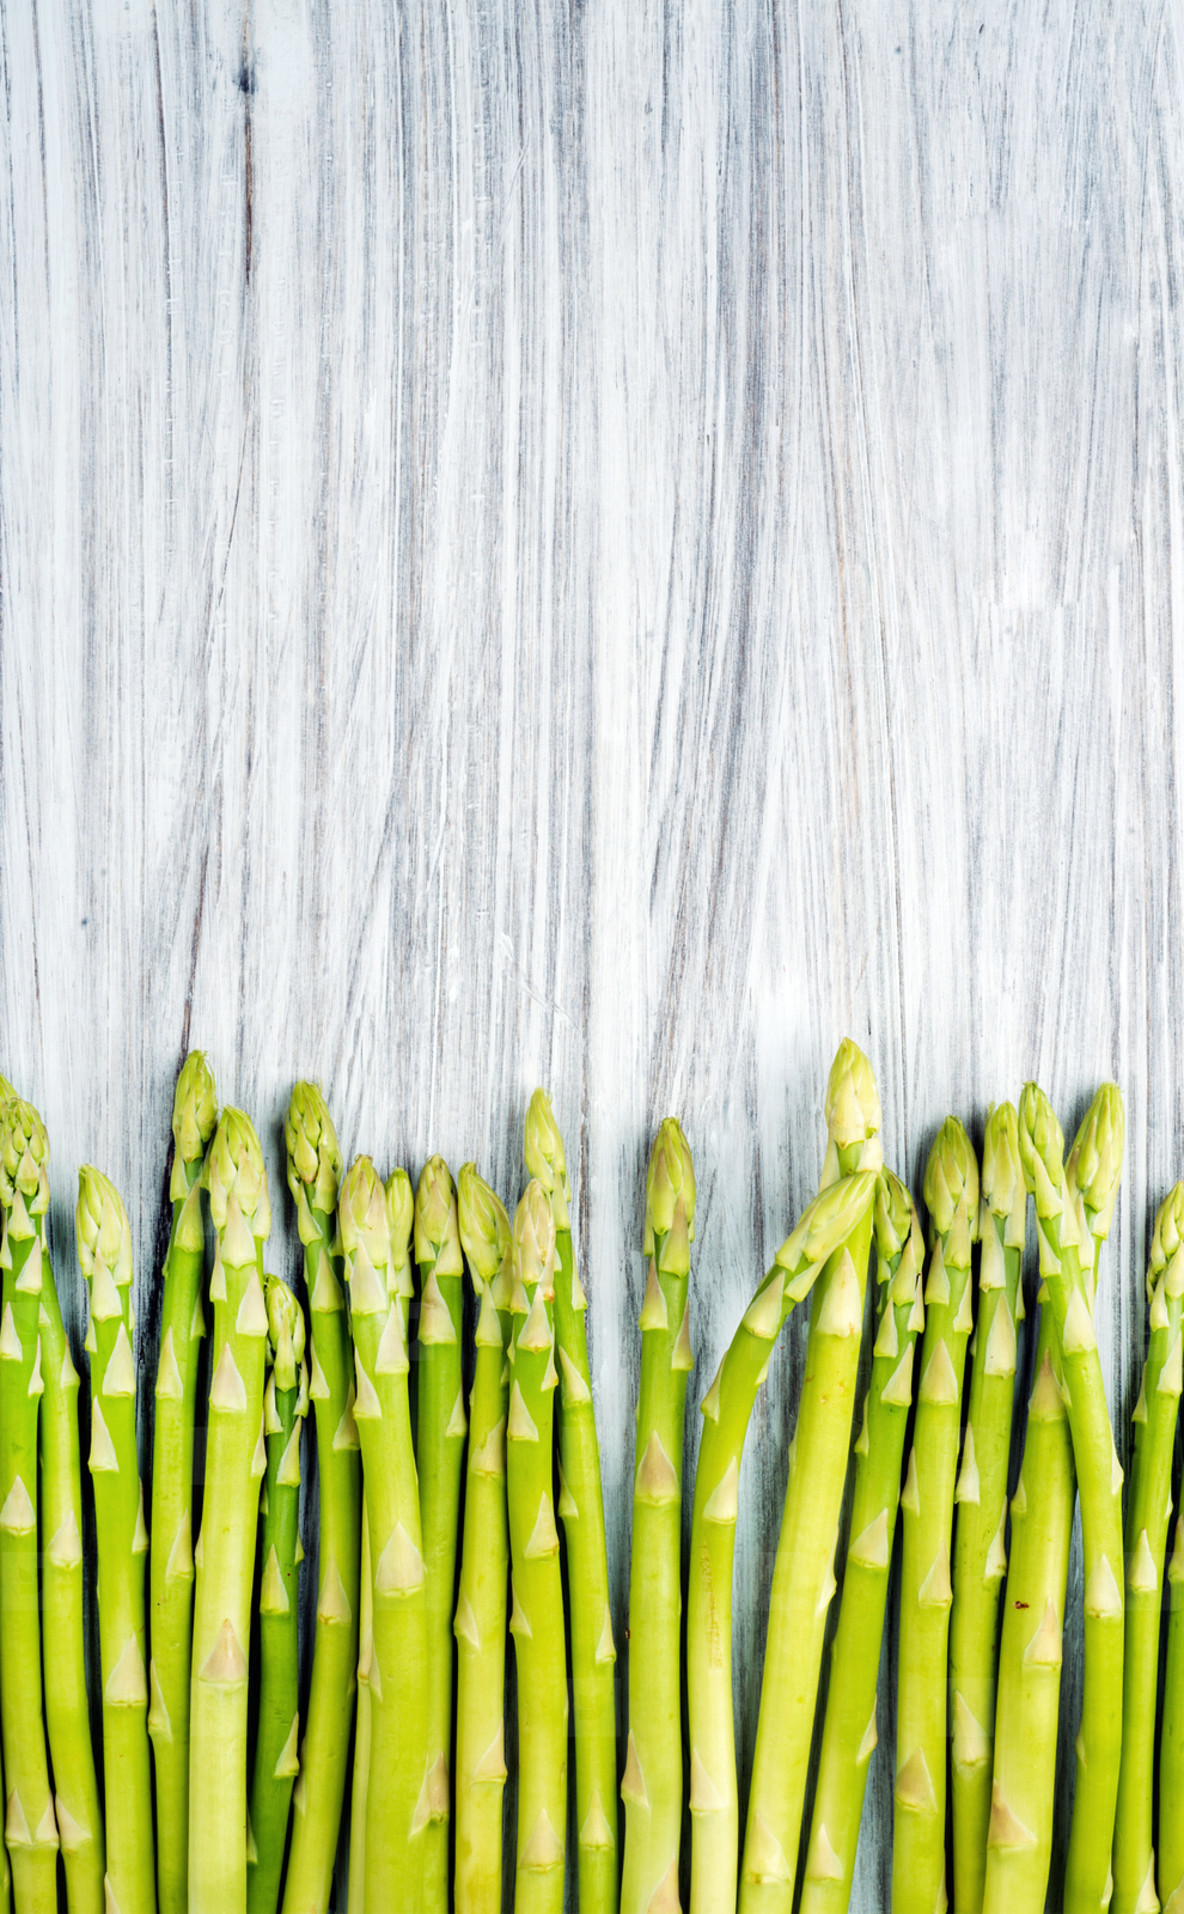 Green fresh sparagus on light painted wooden background